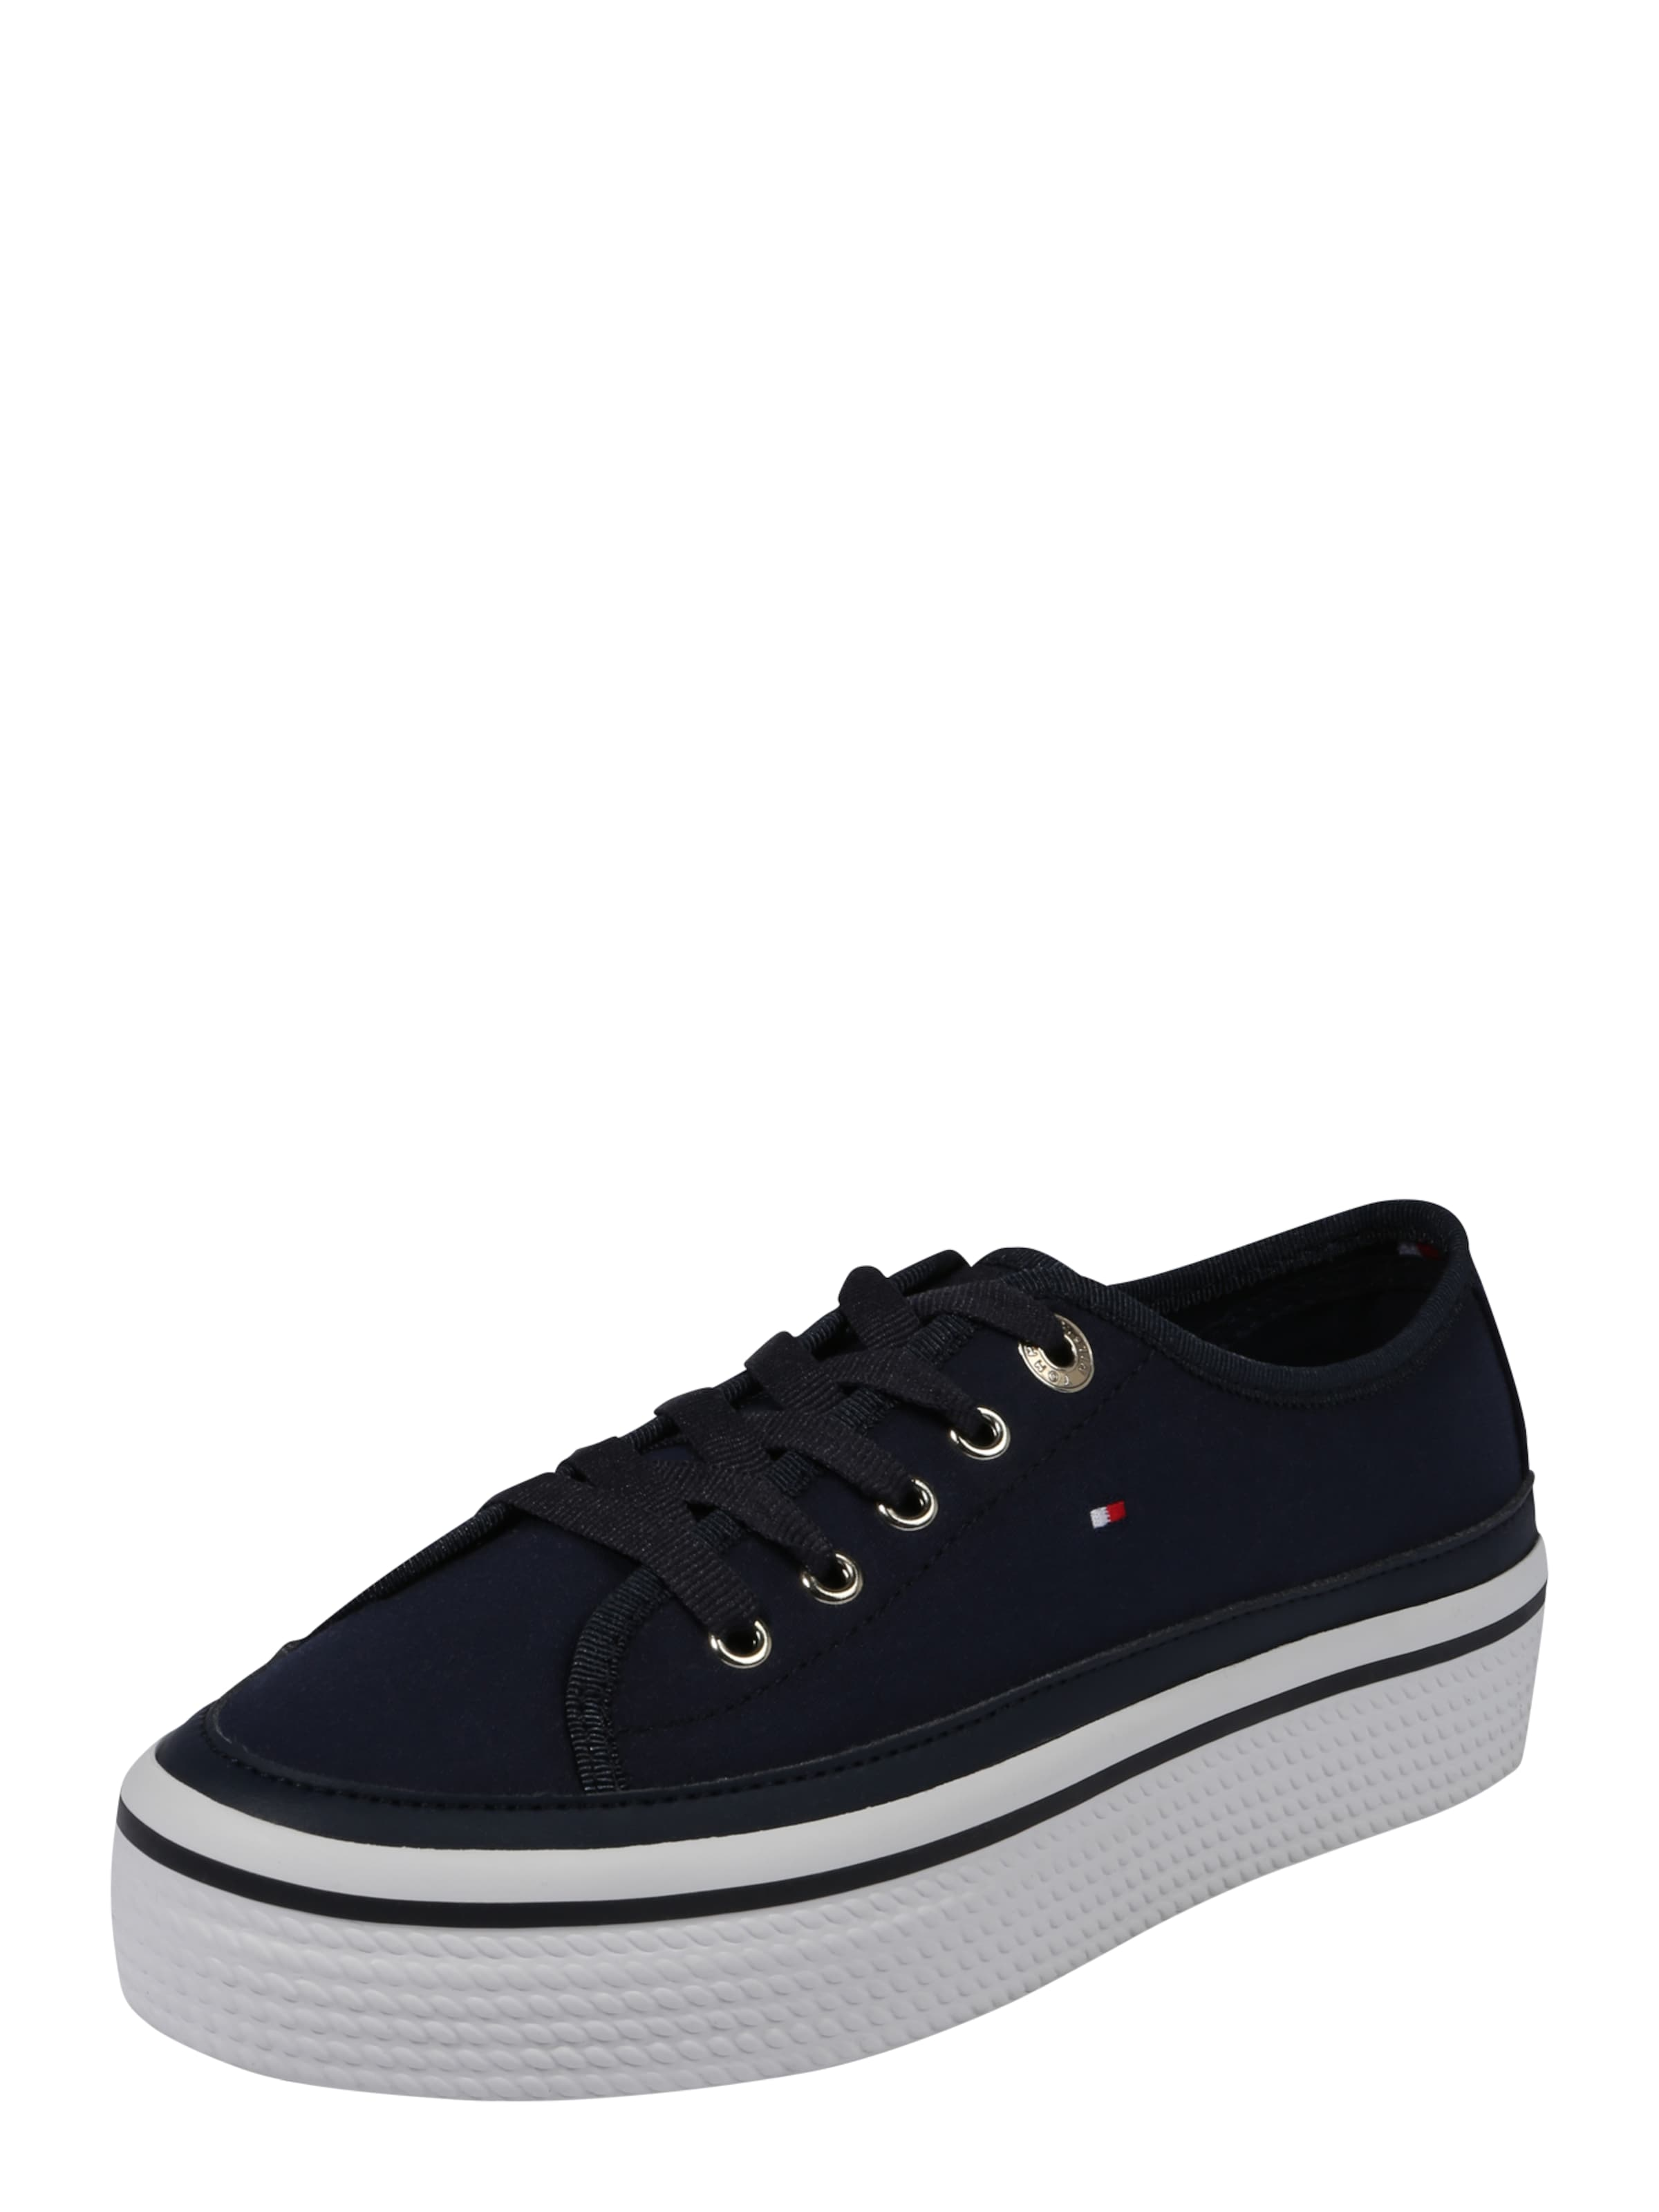 TOMMY HILFIGER Sneaker  CORPORATE FLATFORM